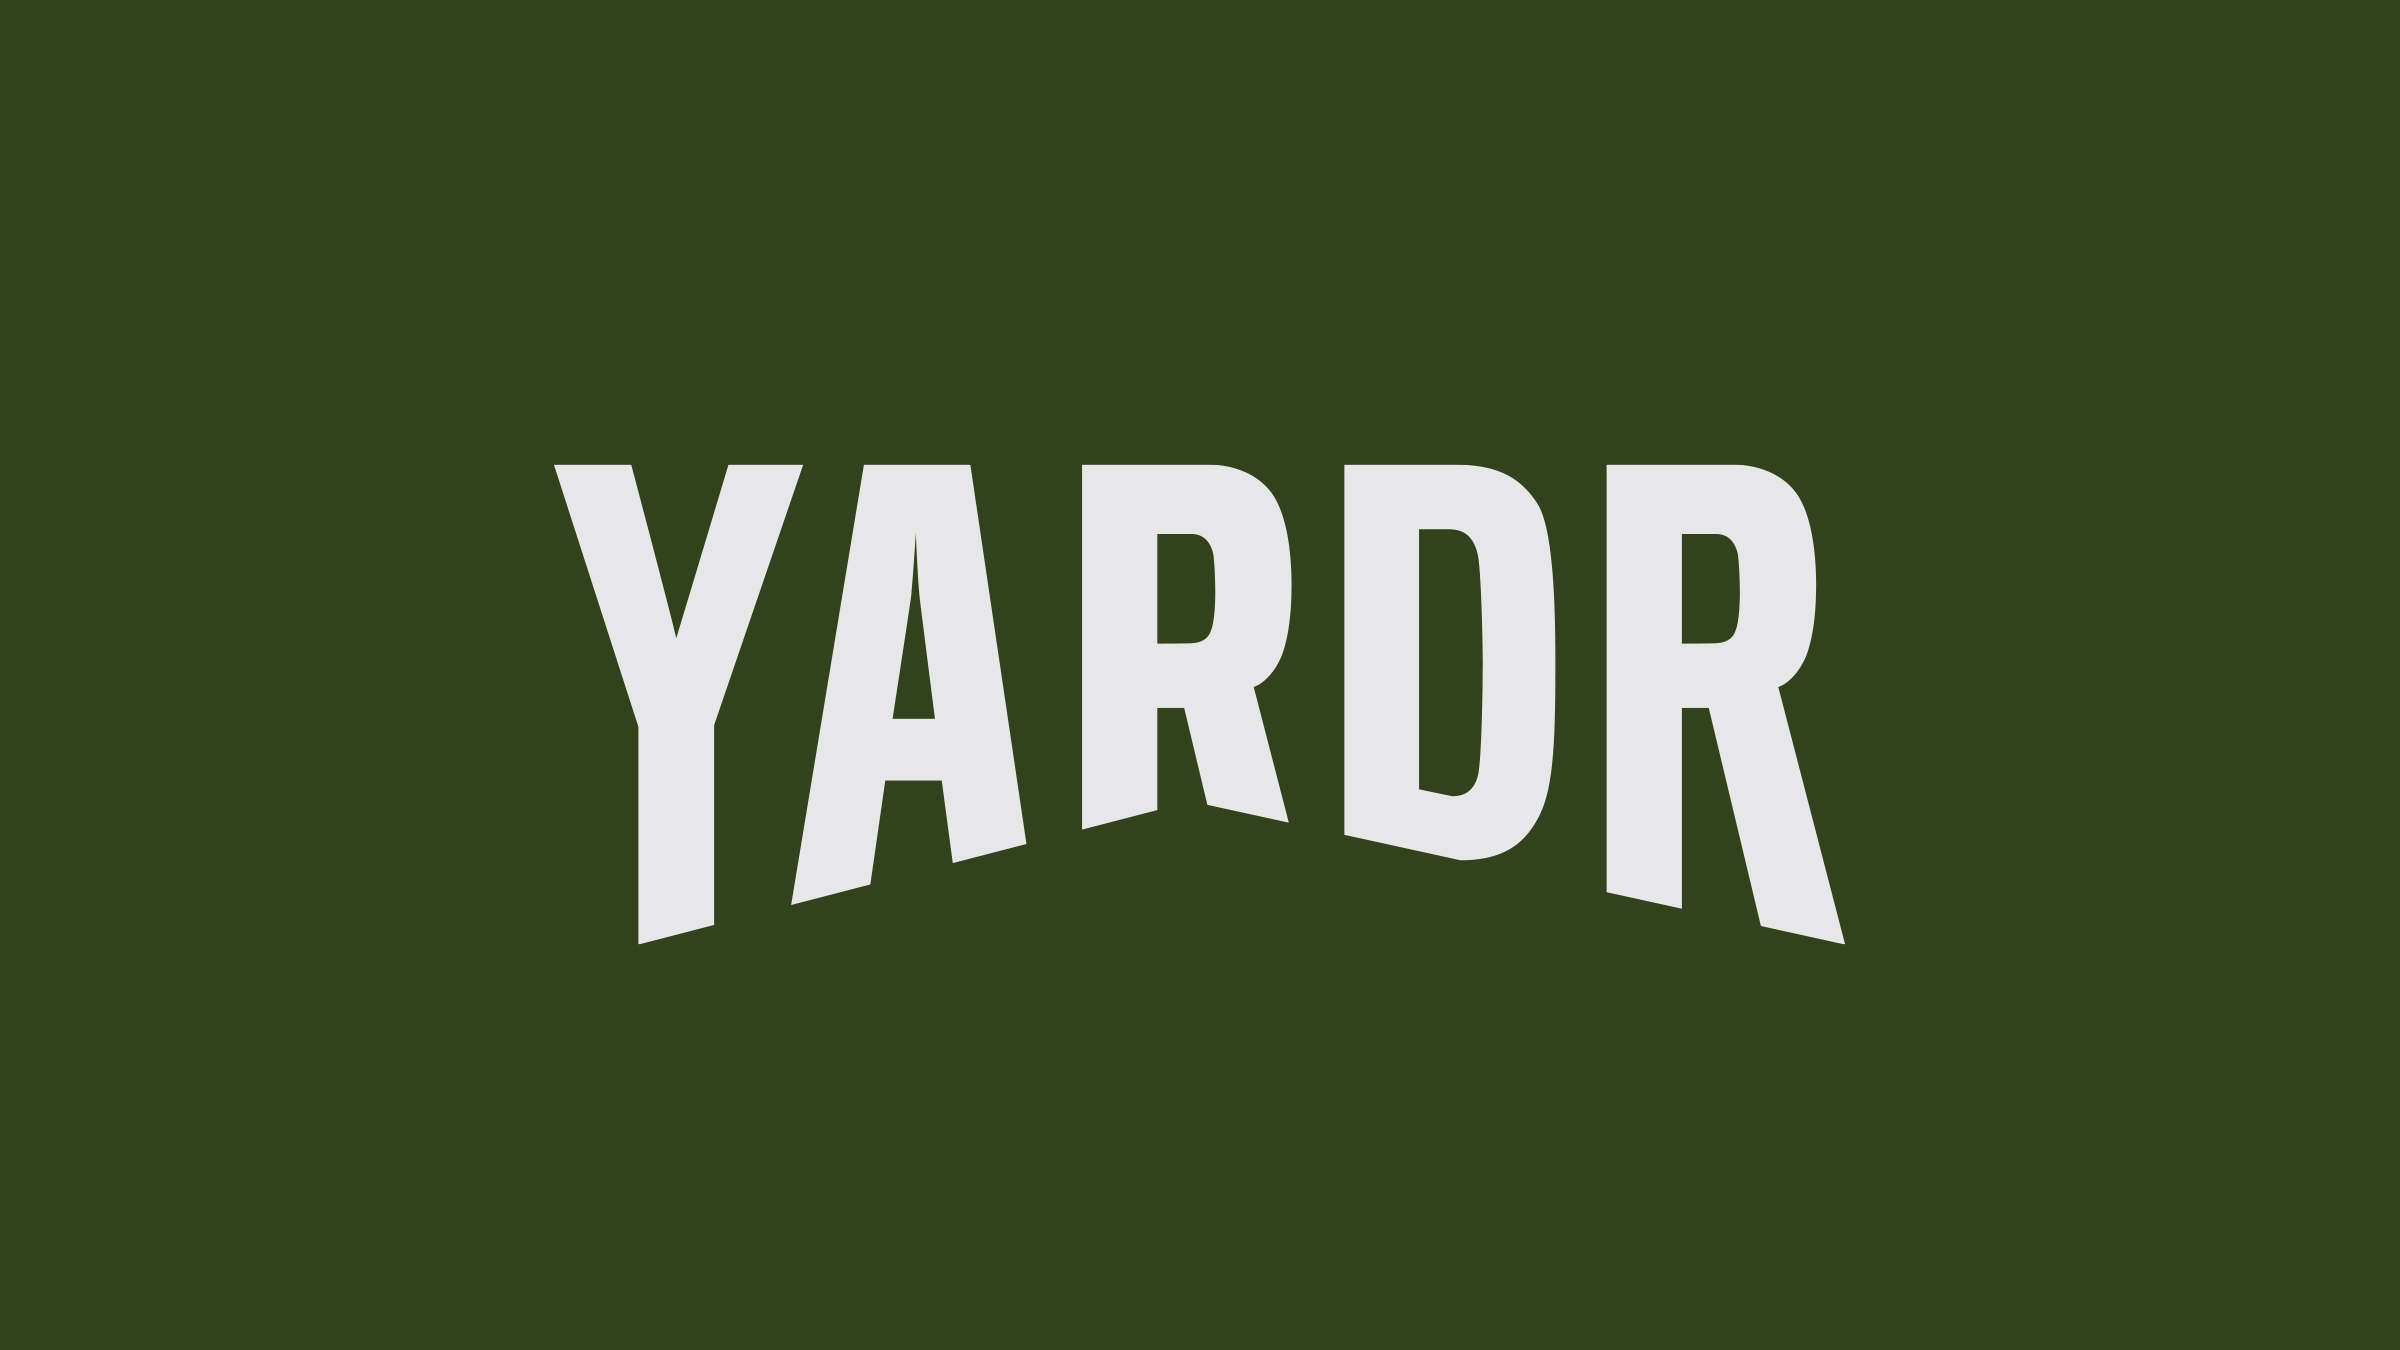 Yardr brand logo white on green